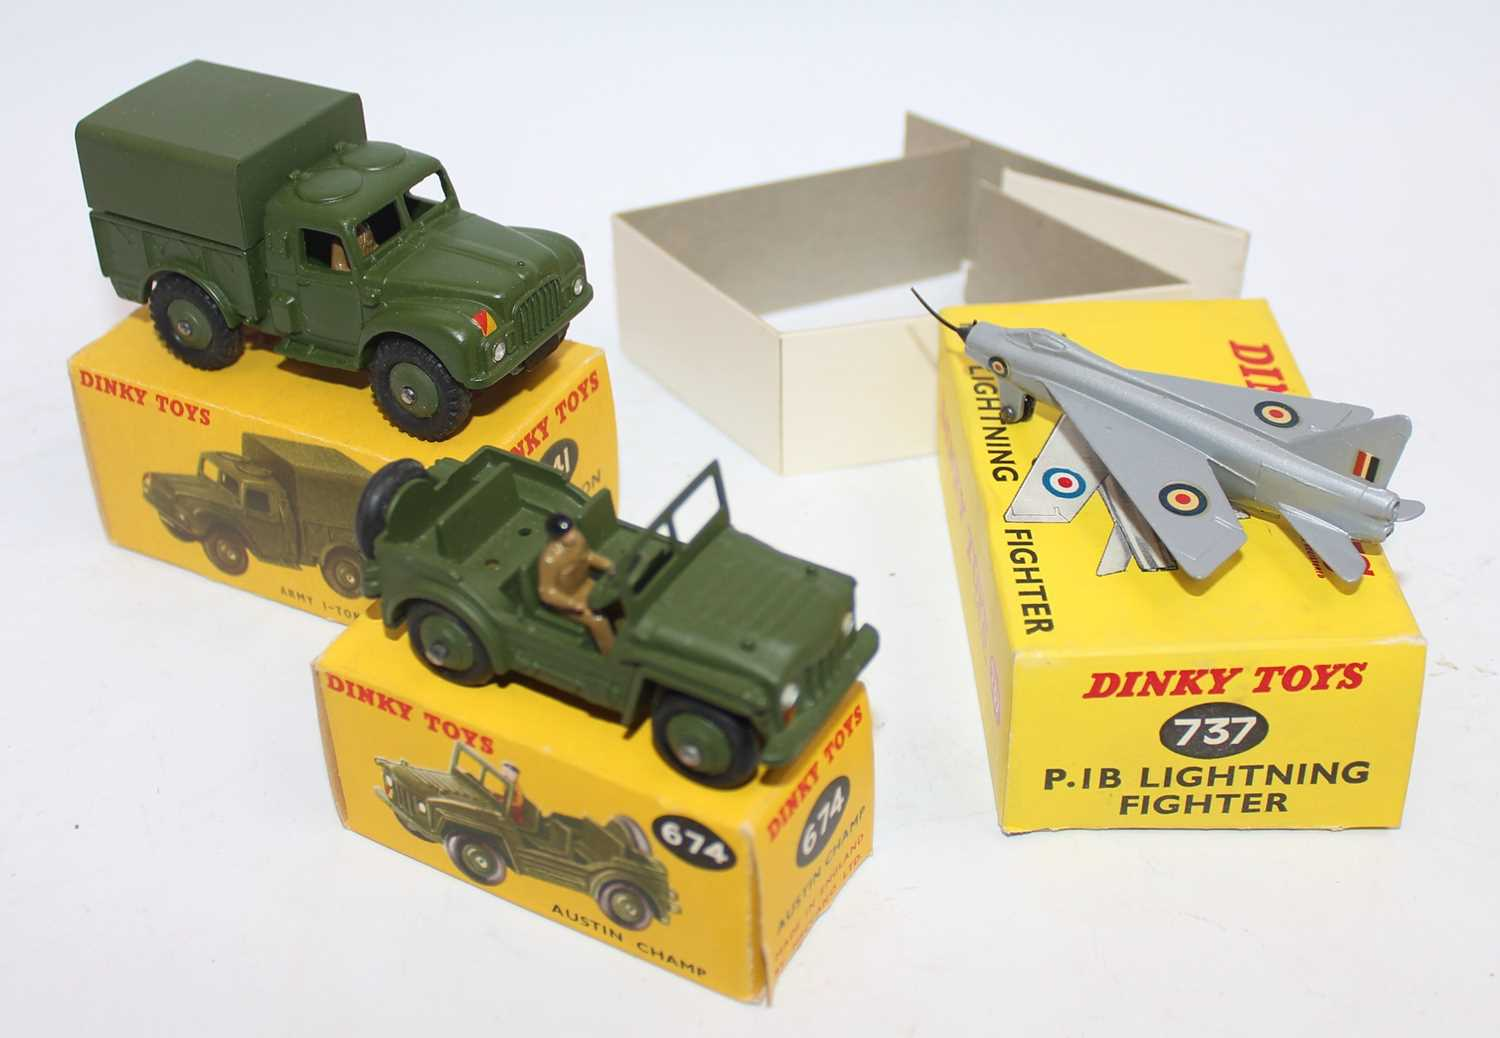 Dinky group of 3 military models as follows: 737 P.I.B Lightning Fighter complete with nose tip - Image 2 of 2